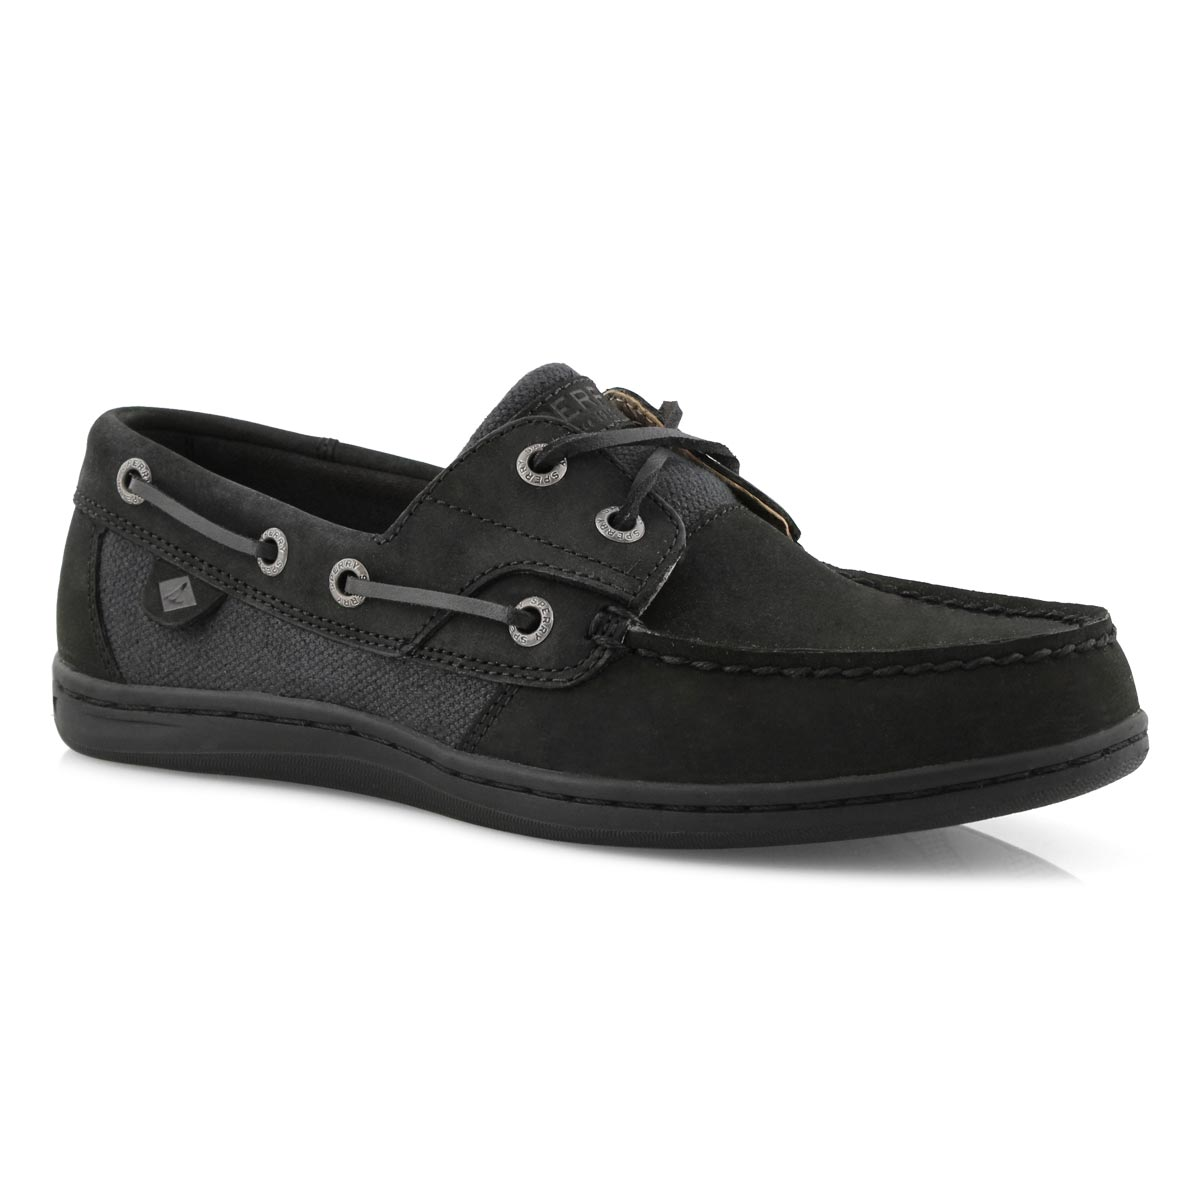 Sperry Women's KOIFISH black boat shoes